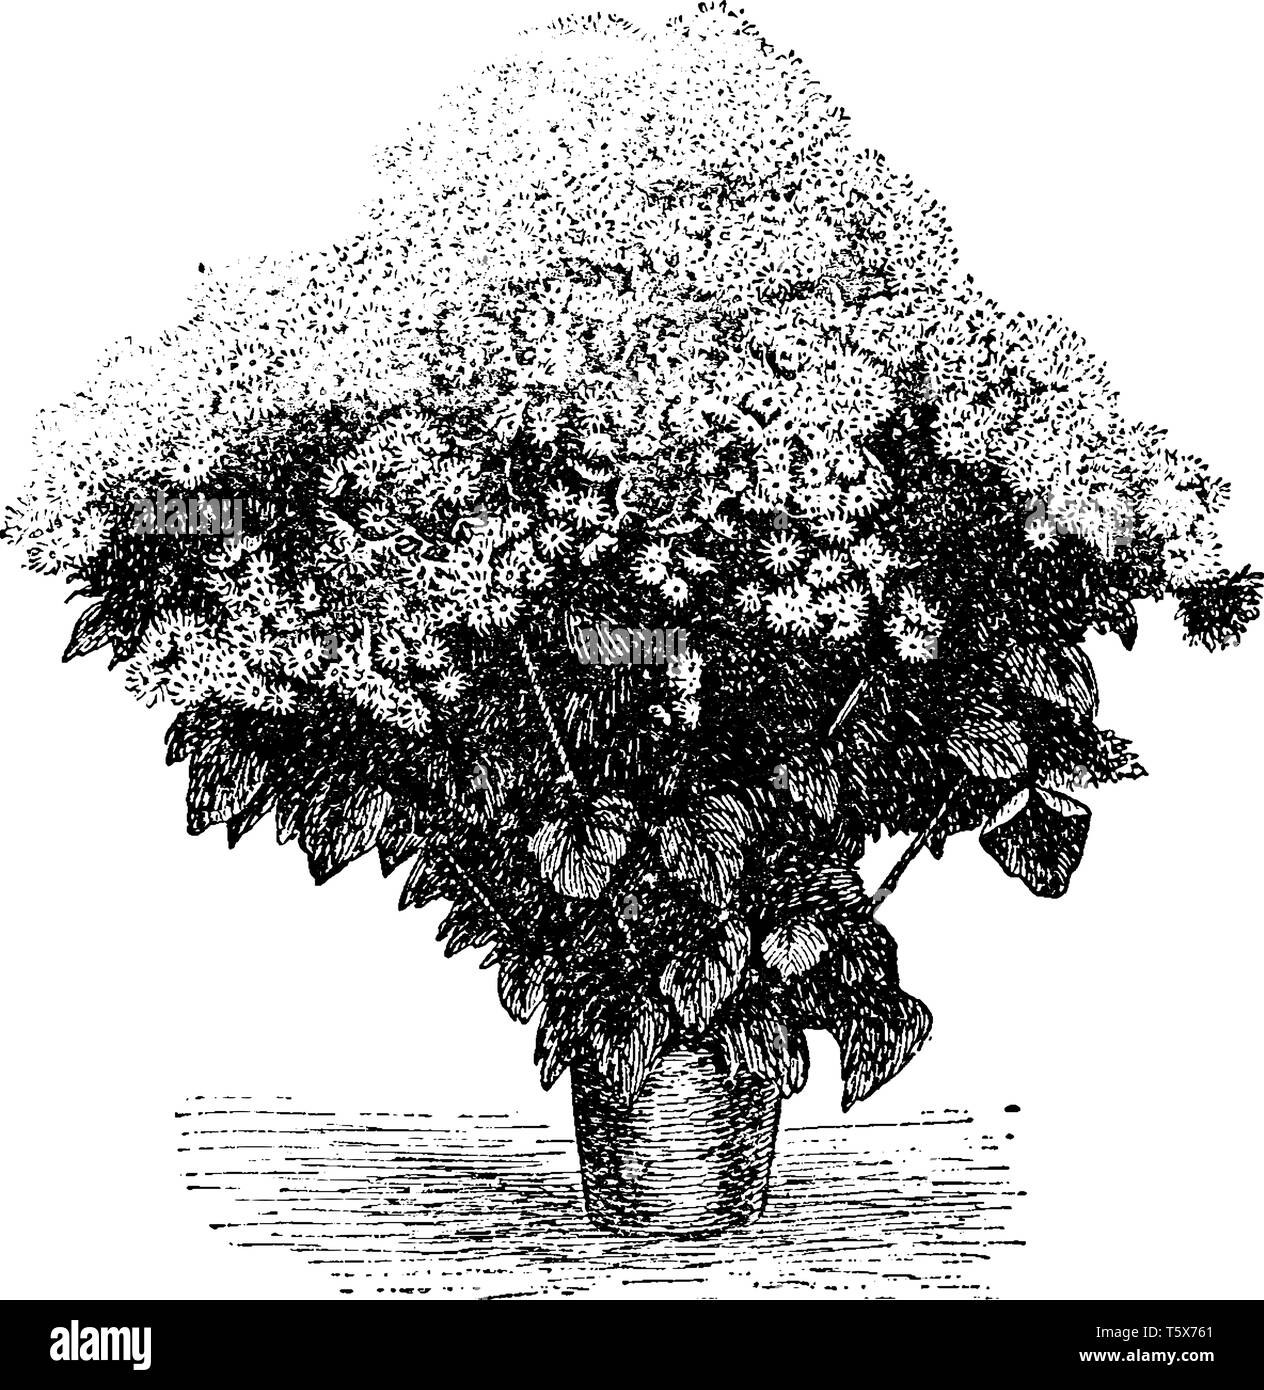 Cineraria plants are one of the most beautiful low growing flowers that can be grown from flower seeds vintage line drawing or engraving illustratio